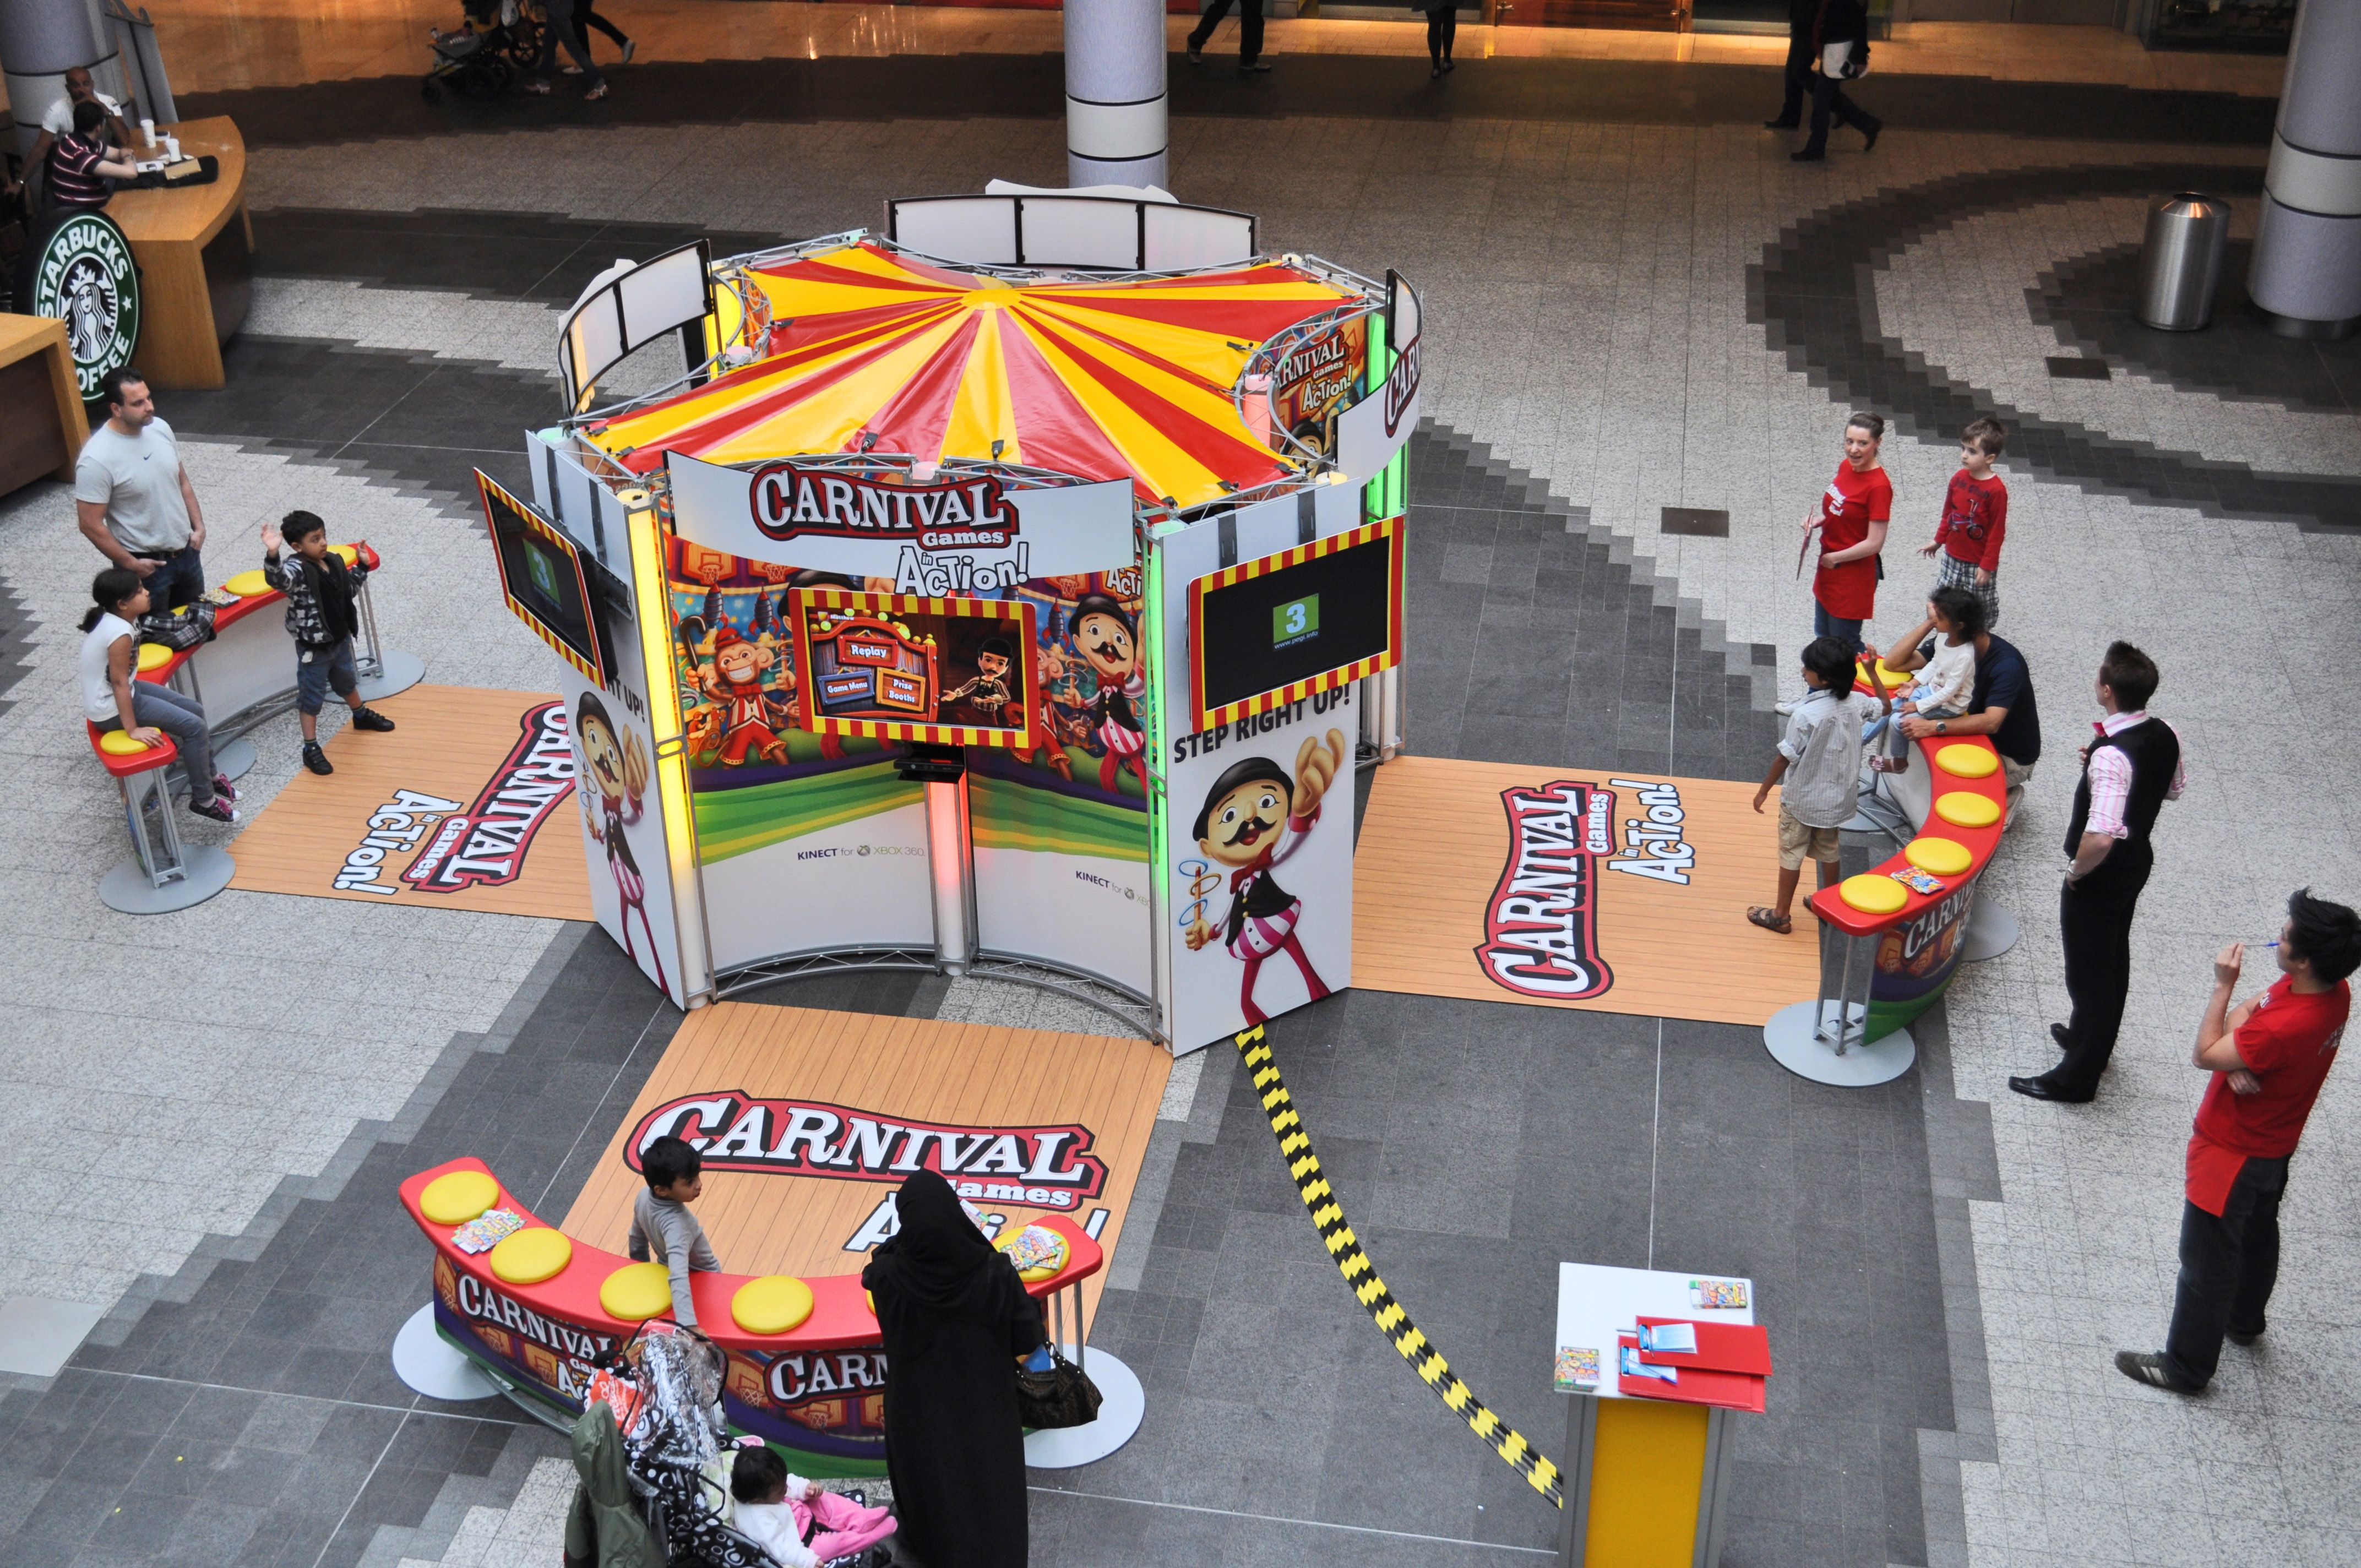 Modular Exhibition Stands Xbox : 7m x 7m exhibition stand for experiential product launch of carinval